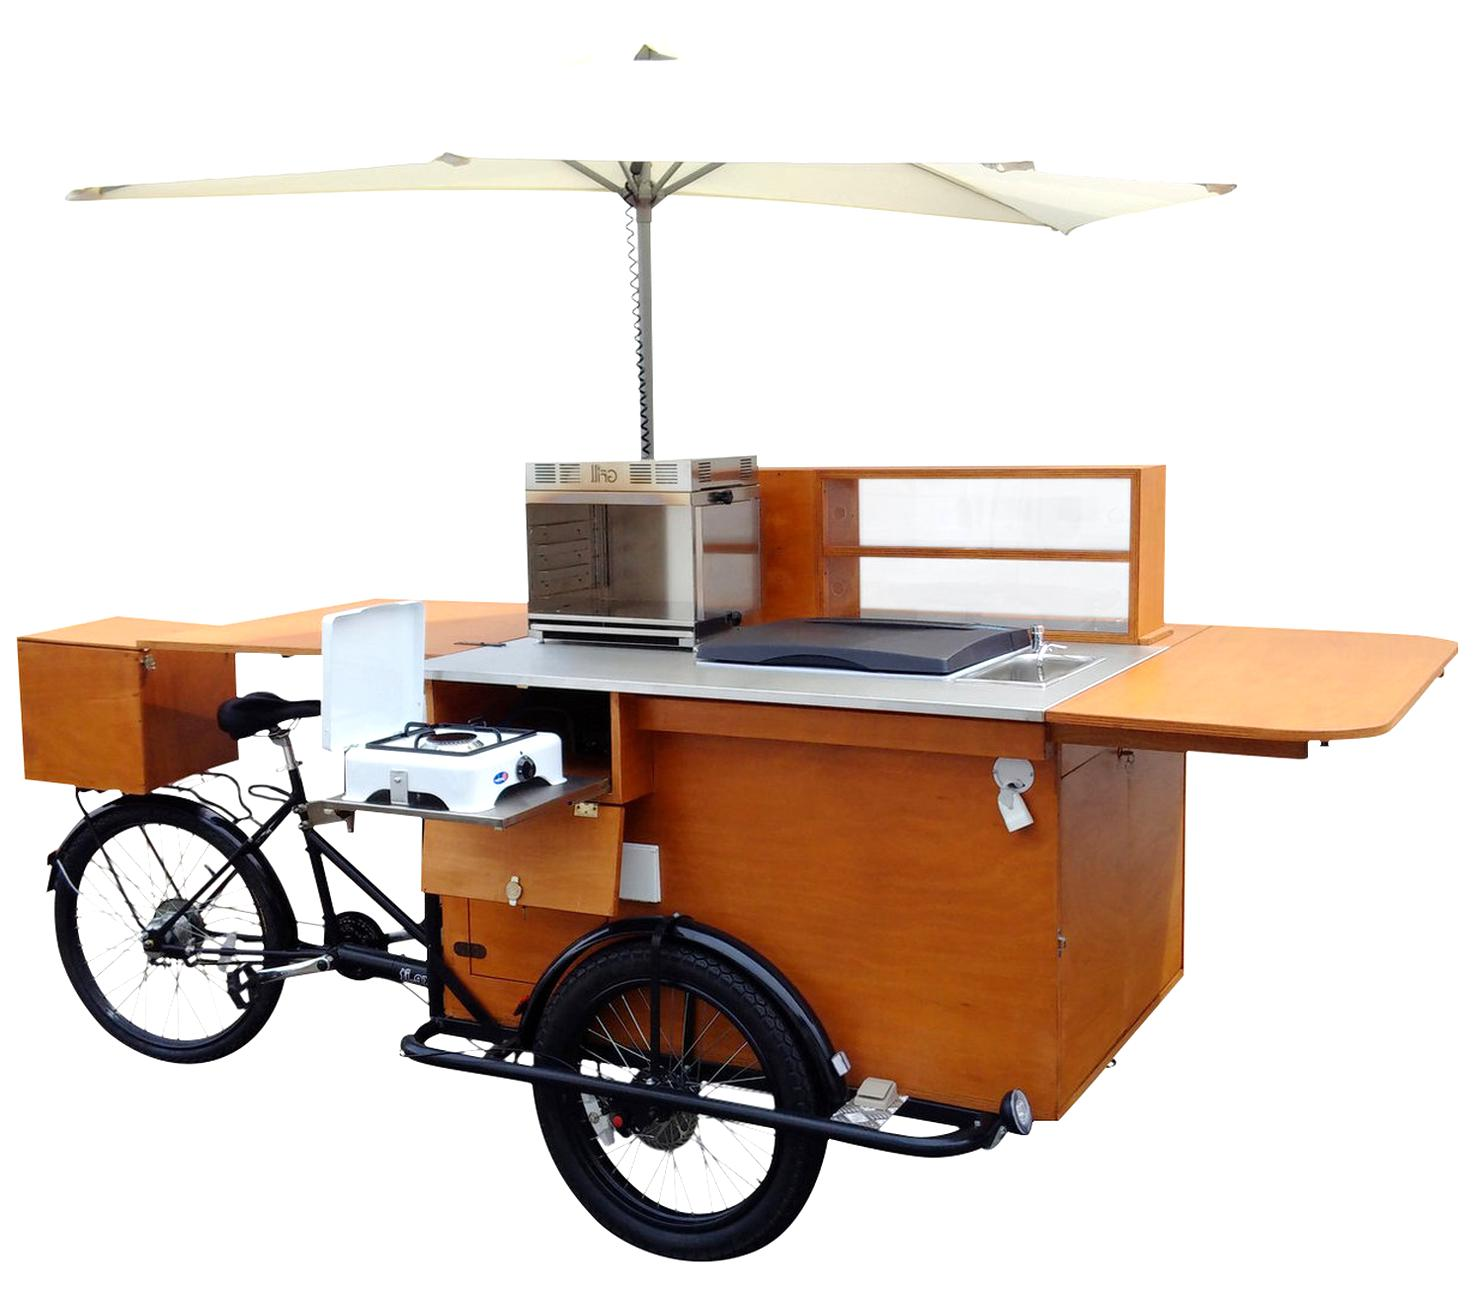 Street_Food_Bike_Cargo_Bike_Banco_Legno_1-a_cargo+bike+food